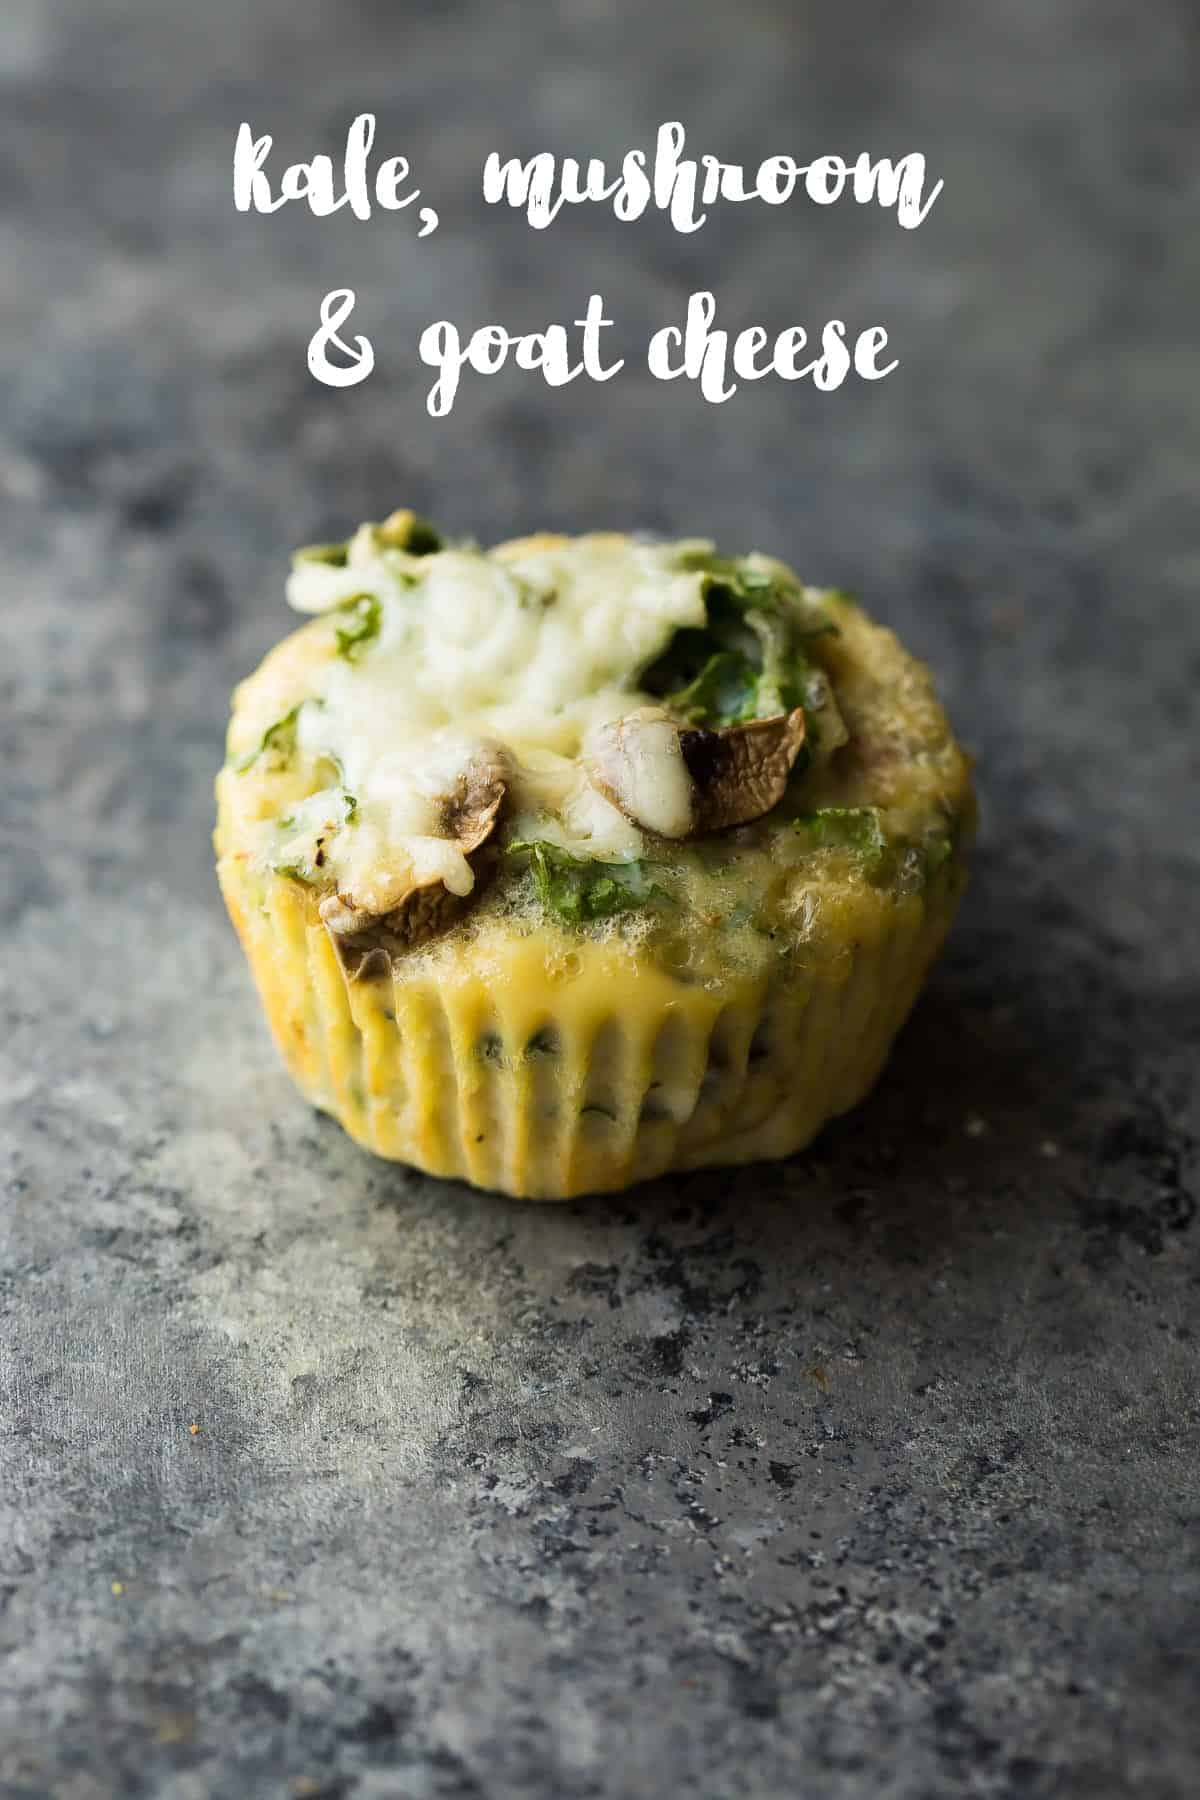 Healthy breakfast egg muffin recipes make a delicious savory low carb breakfast or snack on the go!  7 different vegetable-filled flavors to prep ahead and stock your freezer.